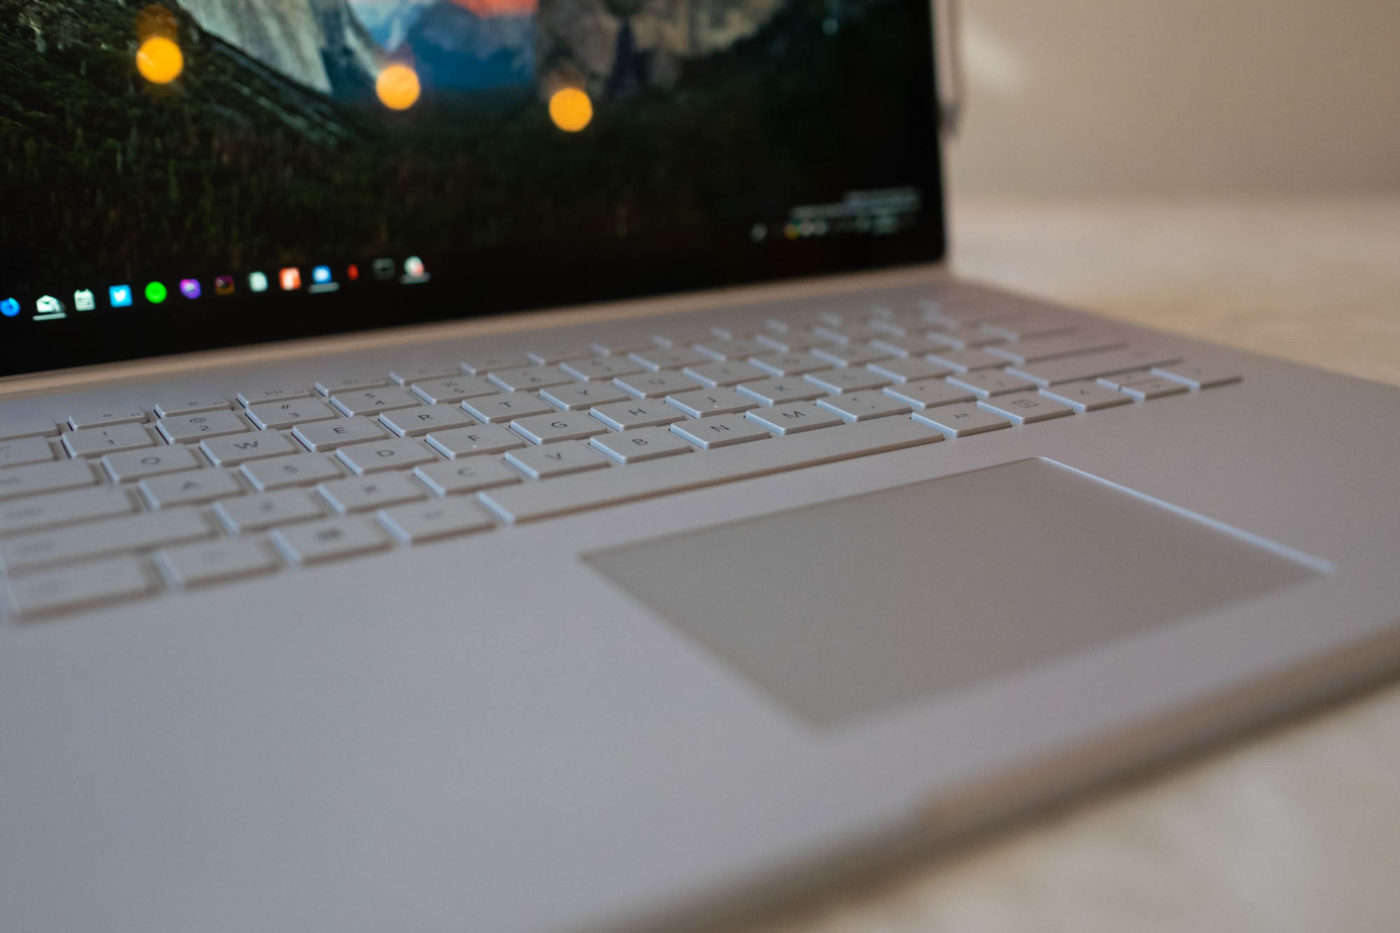 Surface Book 2 vs Macbook Pro (2019 Review): Comparison